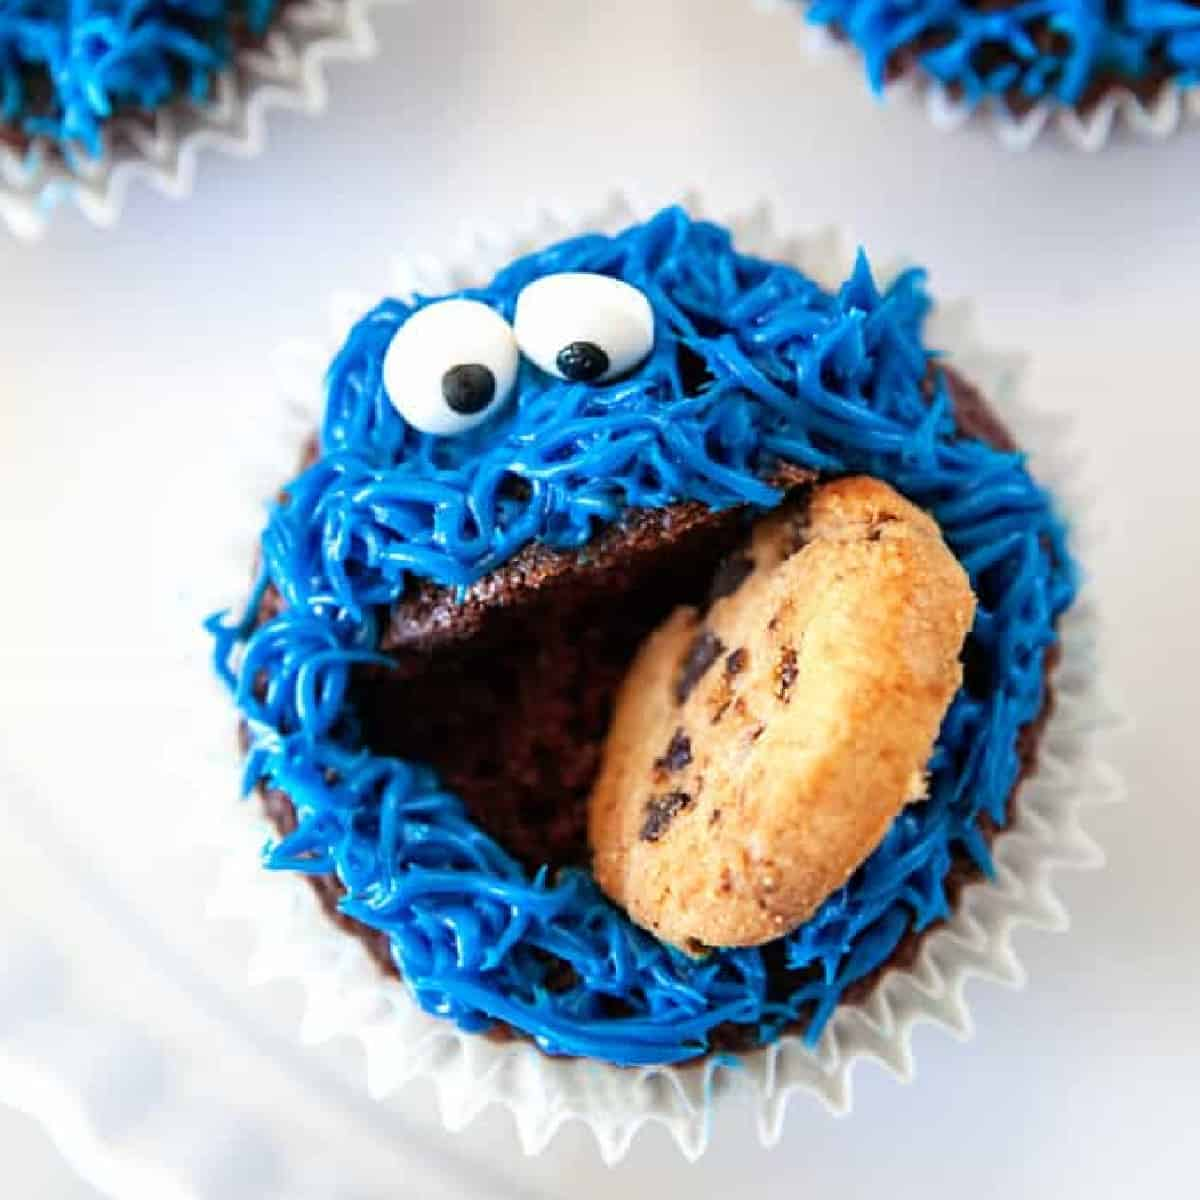 Square photo of a cookie monster cupcake